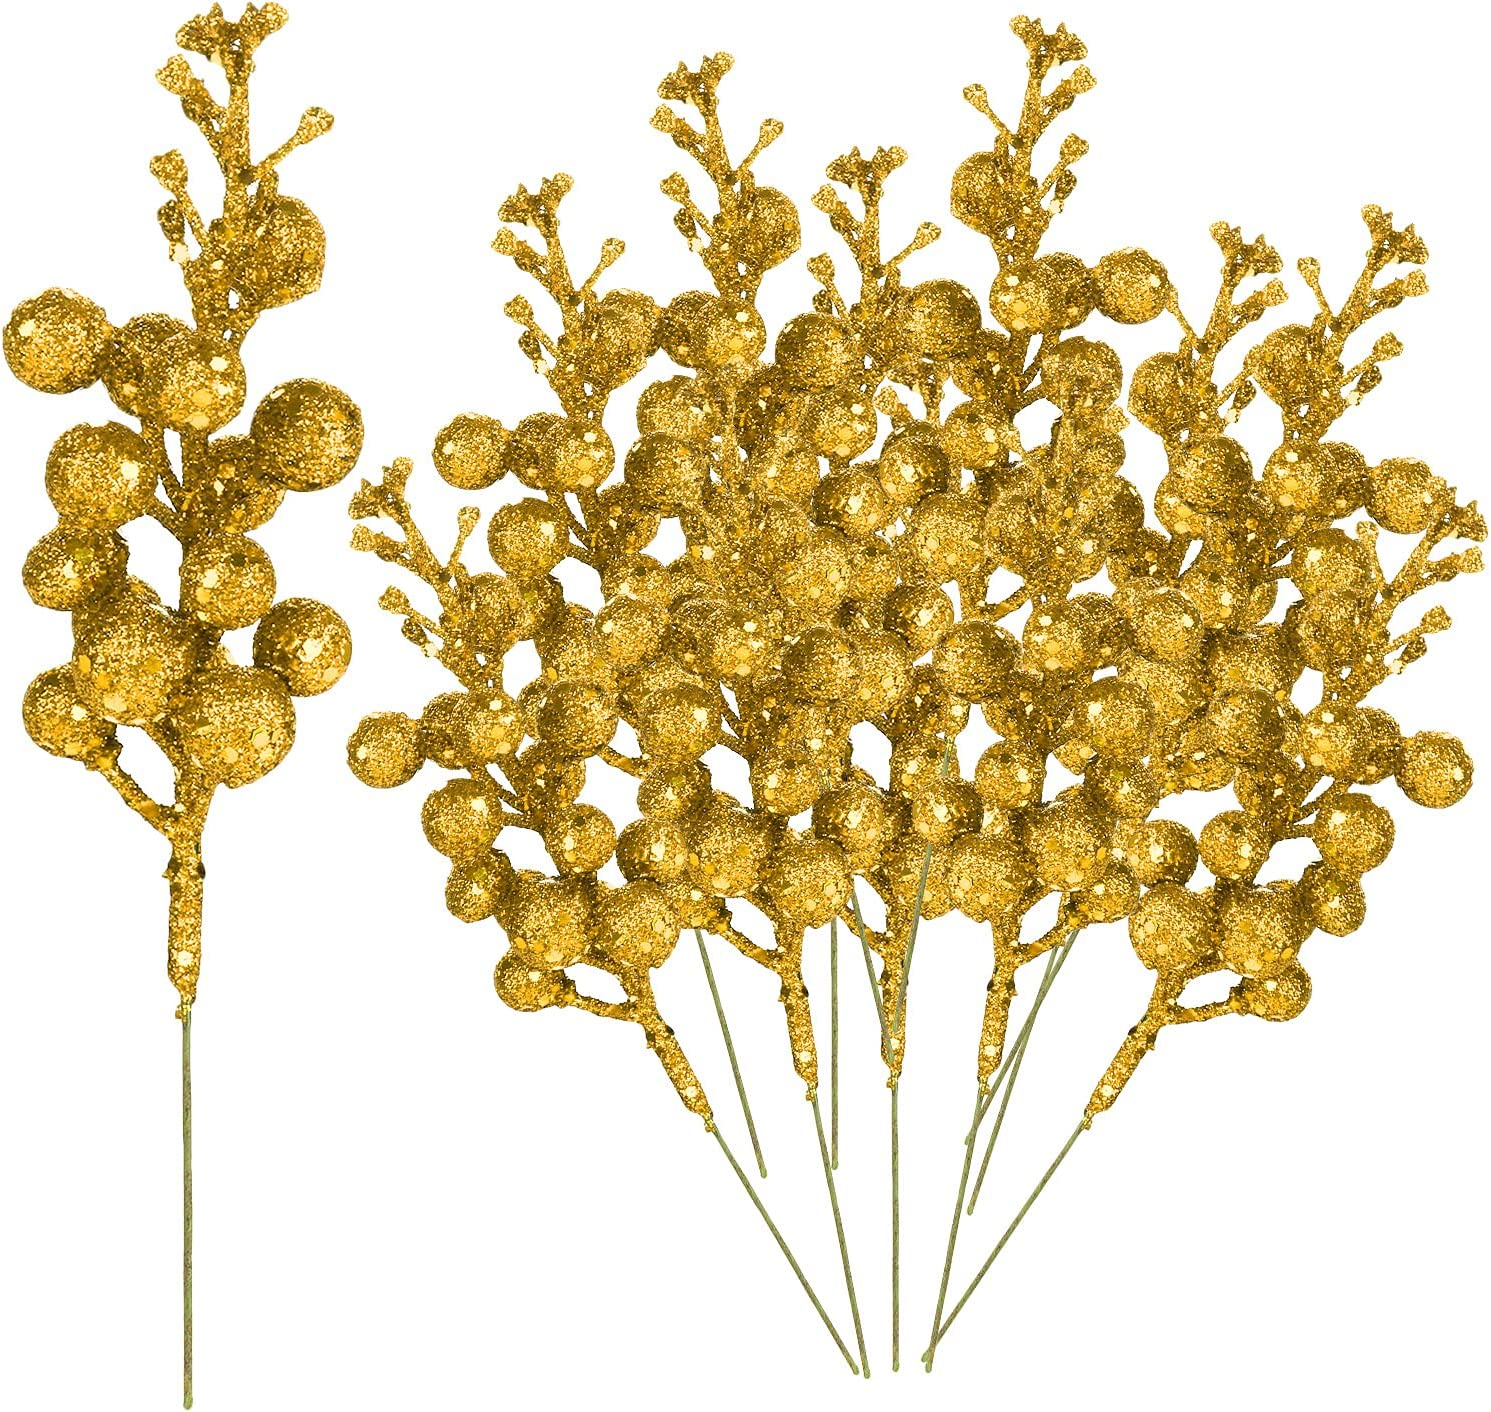 Babody 24 latest Pack Christmas Glitter Inch Berries 7.8 Stems 67% OFF of fixed price Artifici